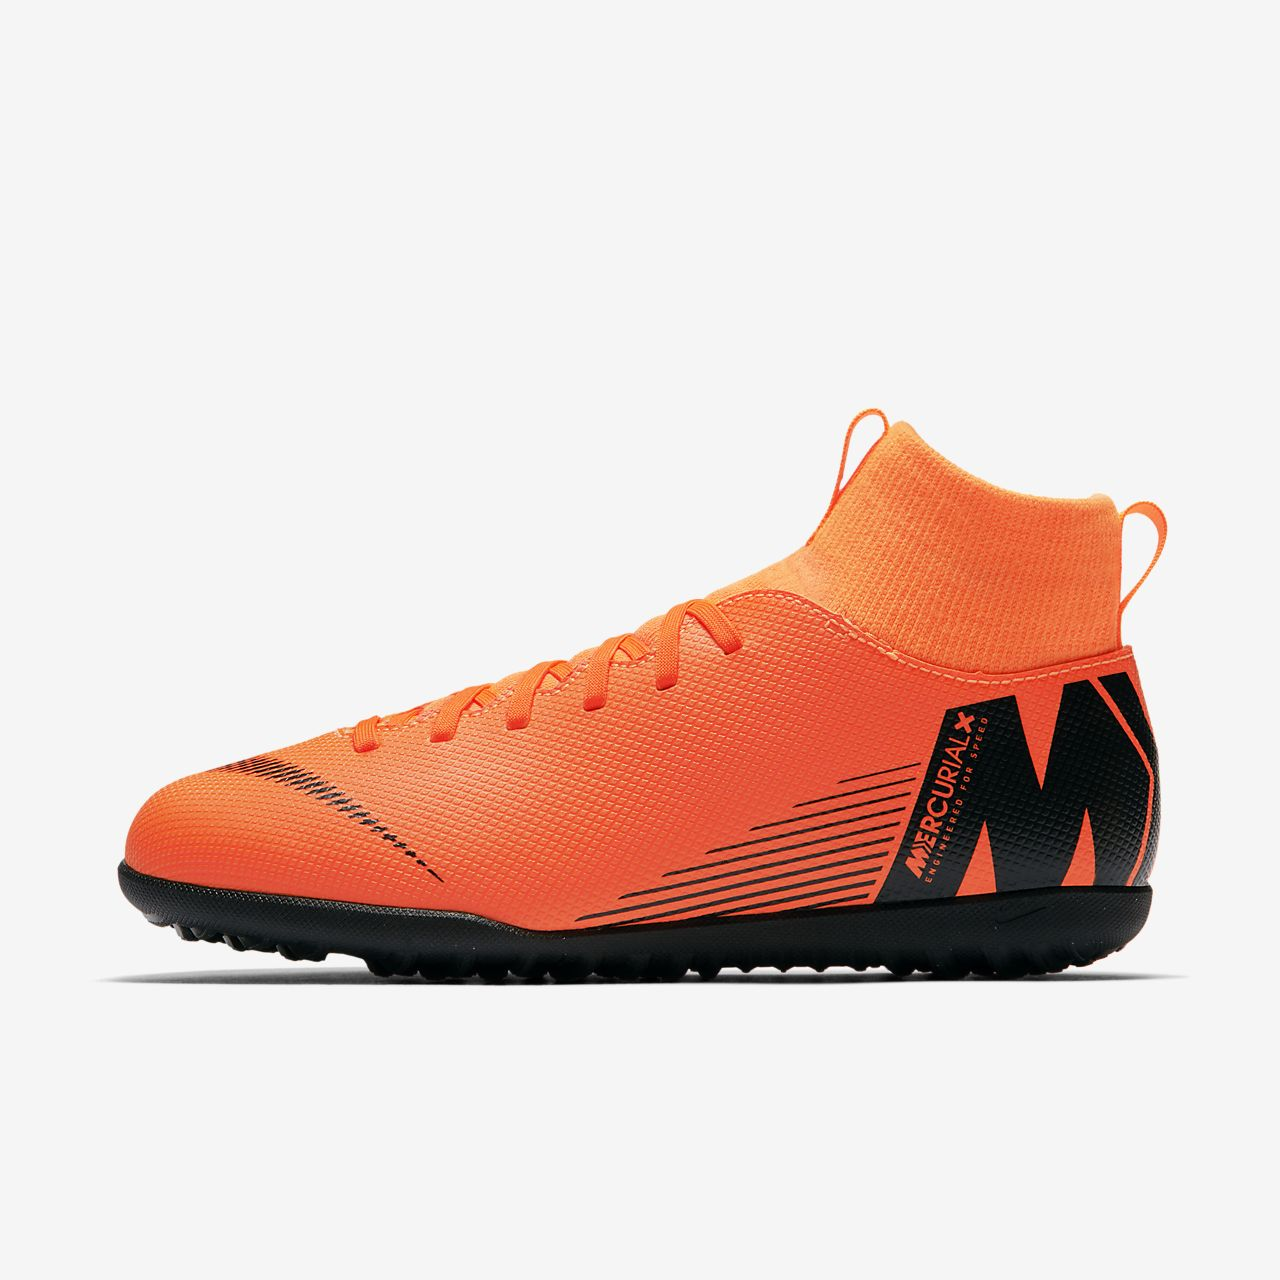 Nike Superflyx 6 Academy TF, Chaussures de Football Homme, Orange (Total Orange/Total Orange/Volt/White 810), 38.5 EU